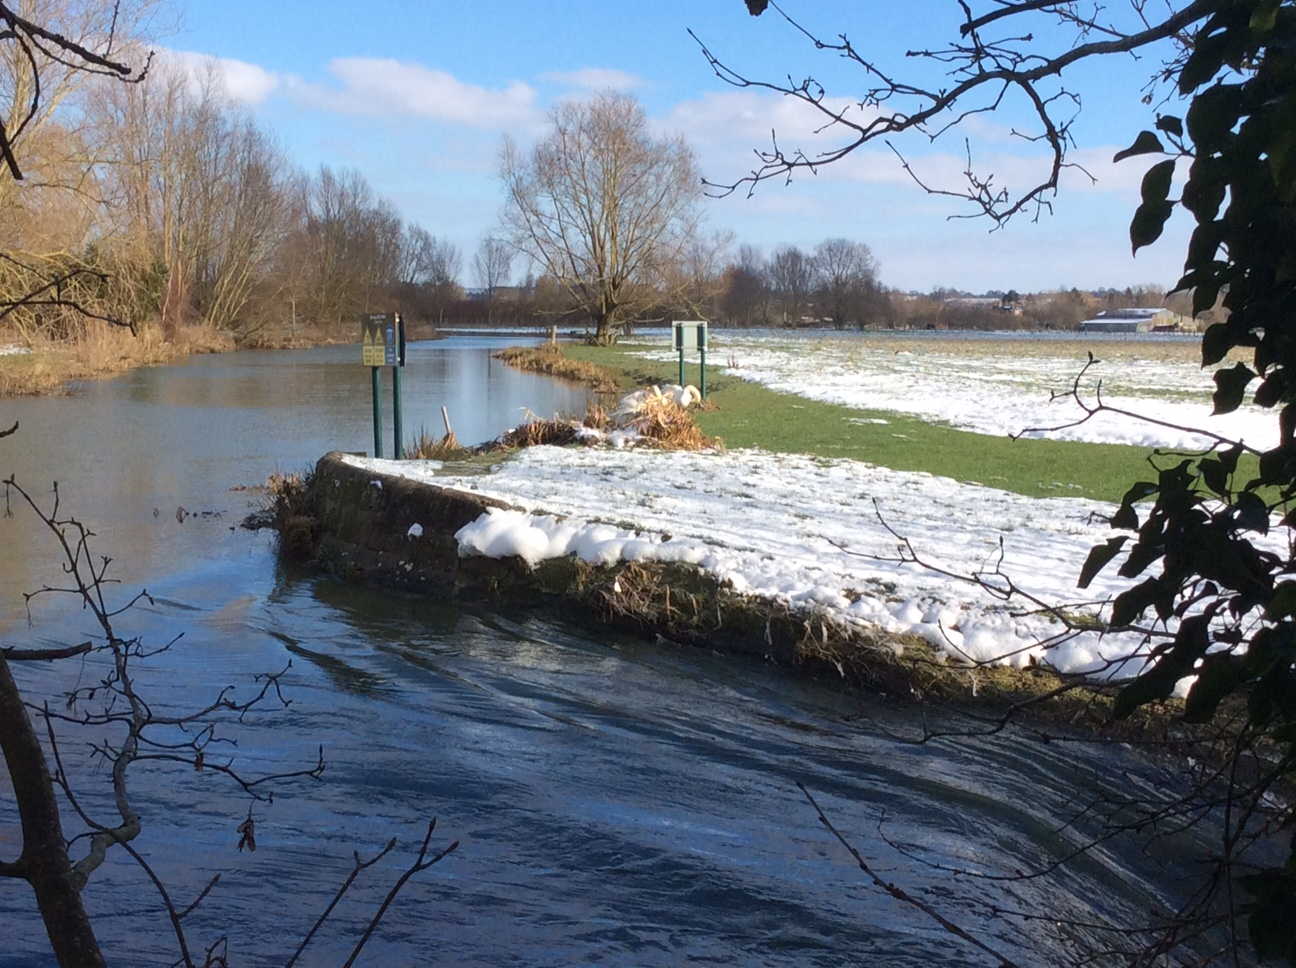 A bend in the River Stour in the snowy landscape